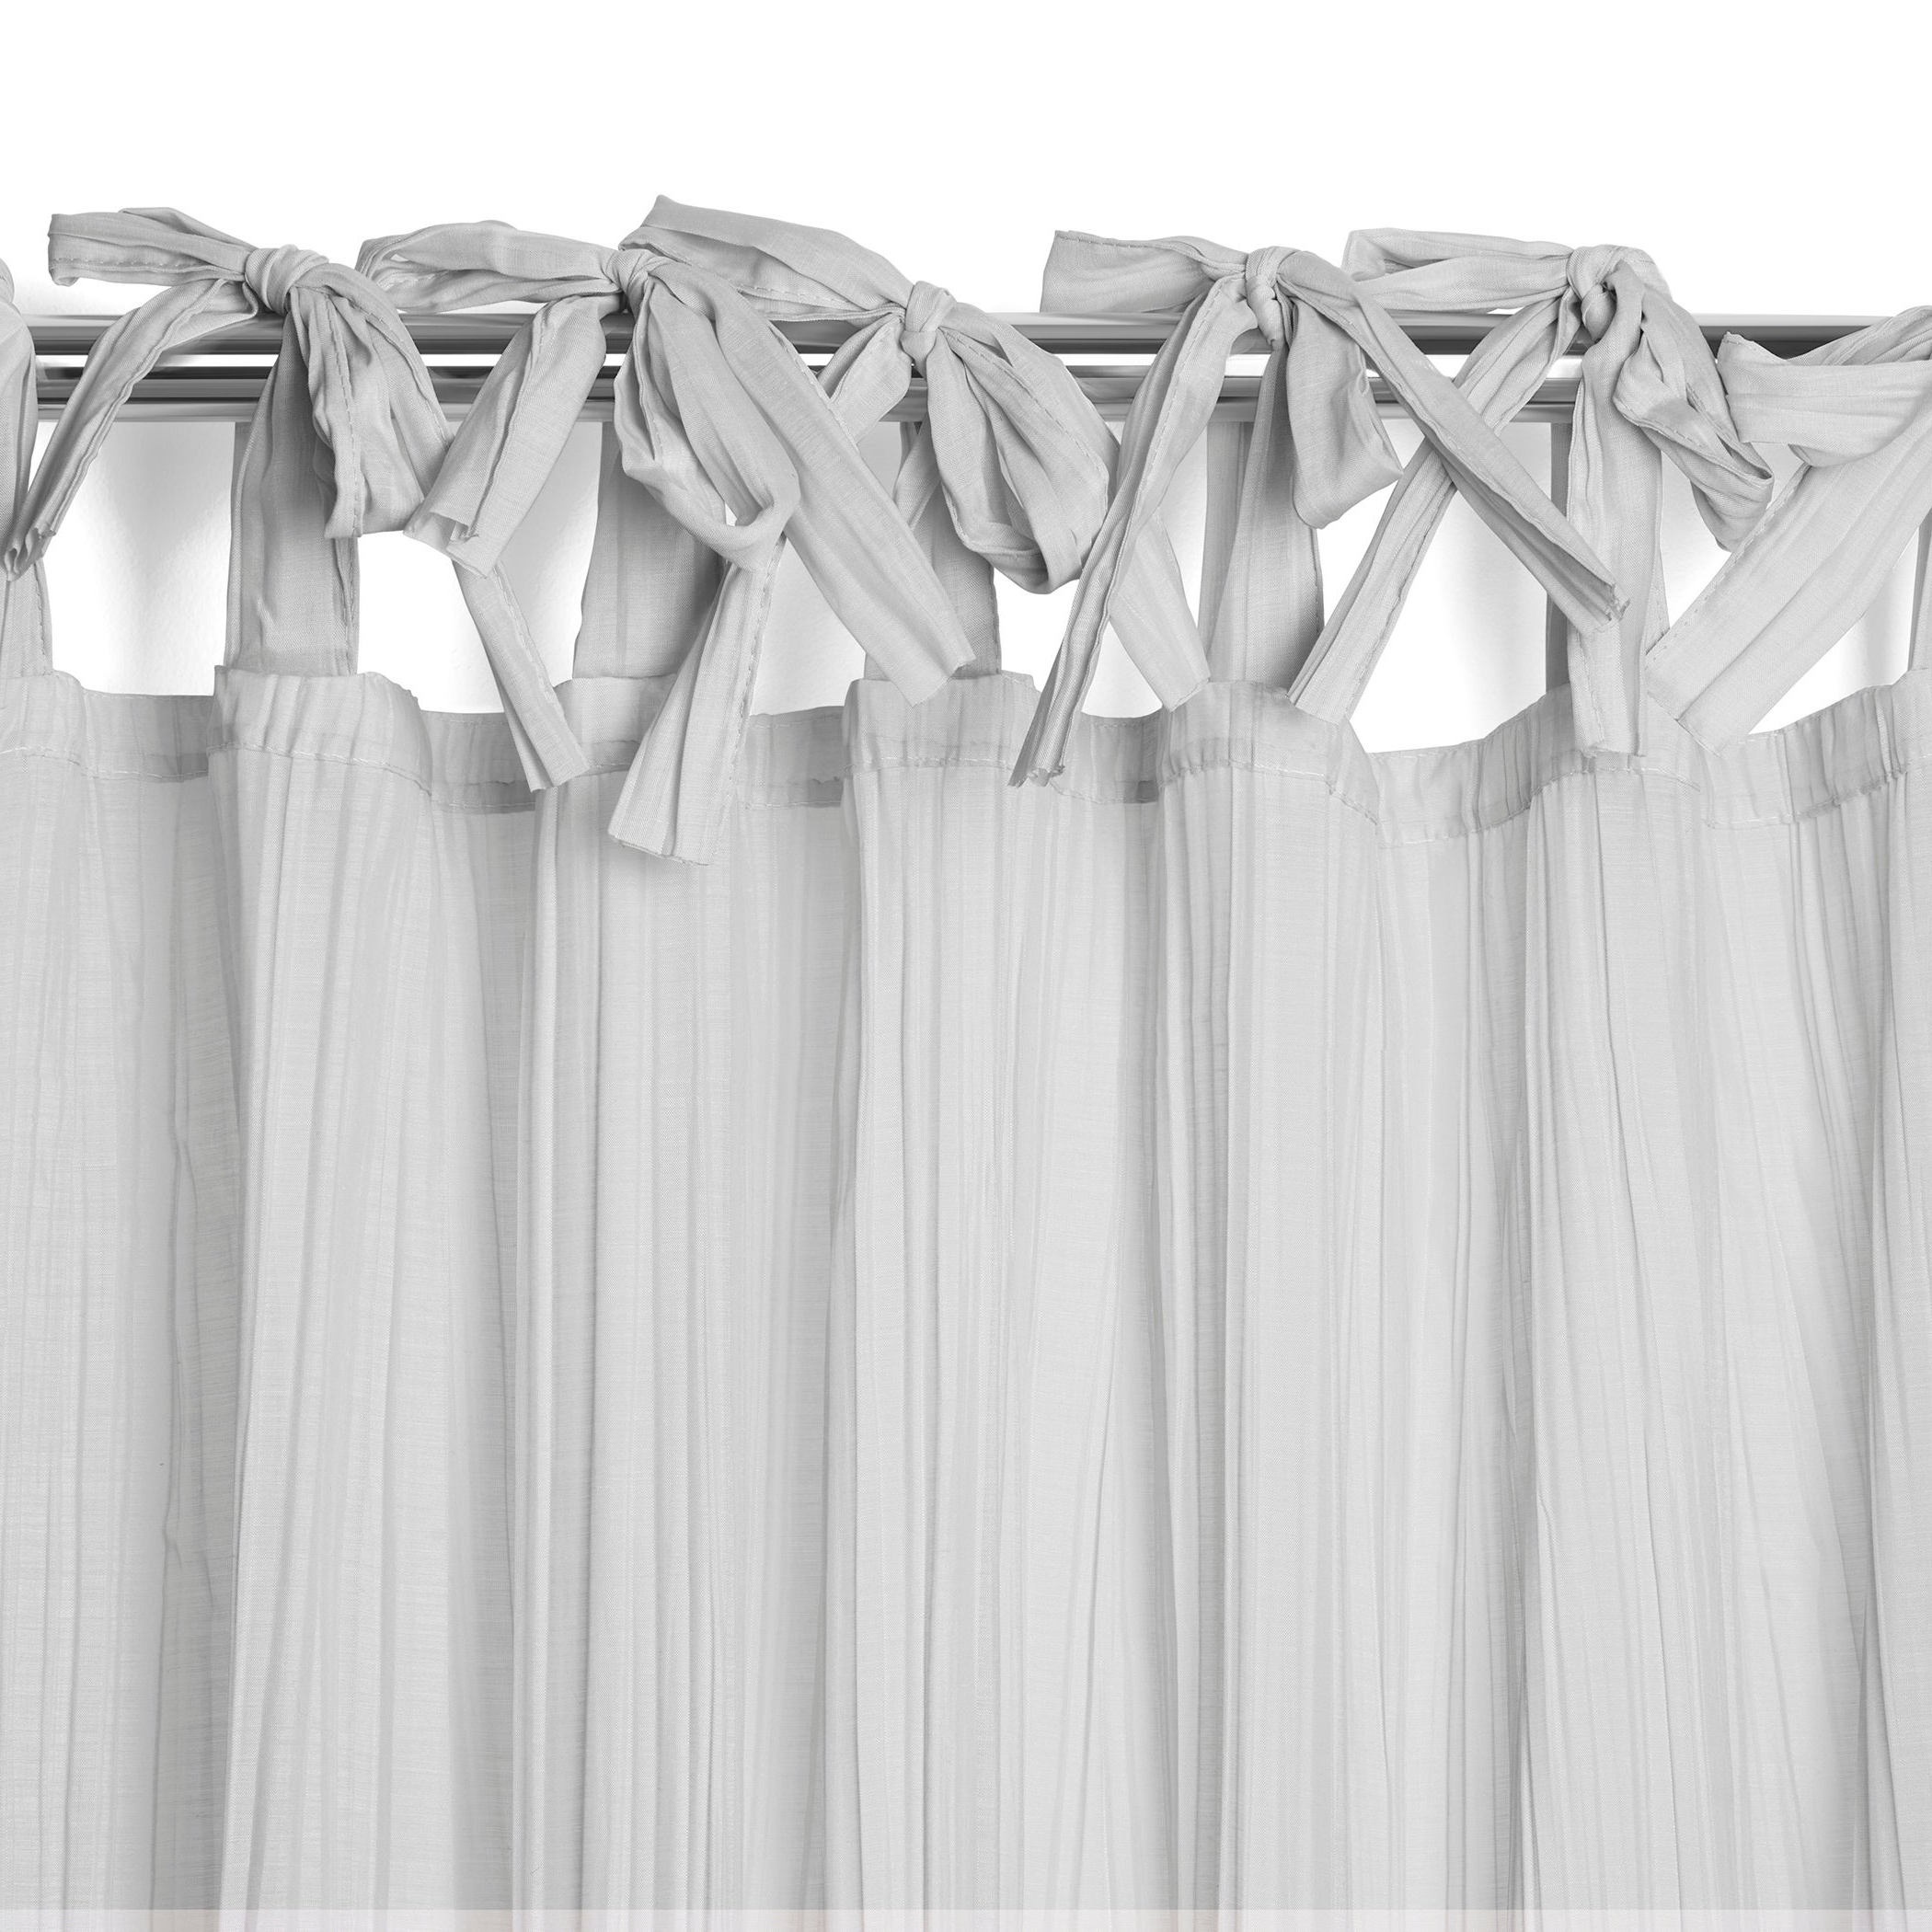 Best And Newest Elrene Jolie Tie Top Curtain Panel Intended For Elrene Jolie Tie Top Curtain Panels (View 6 of 20)